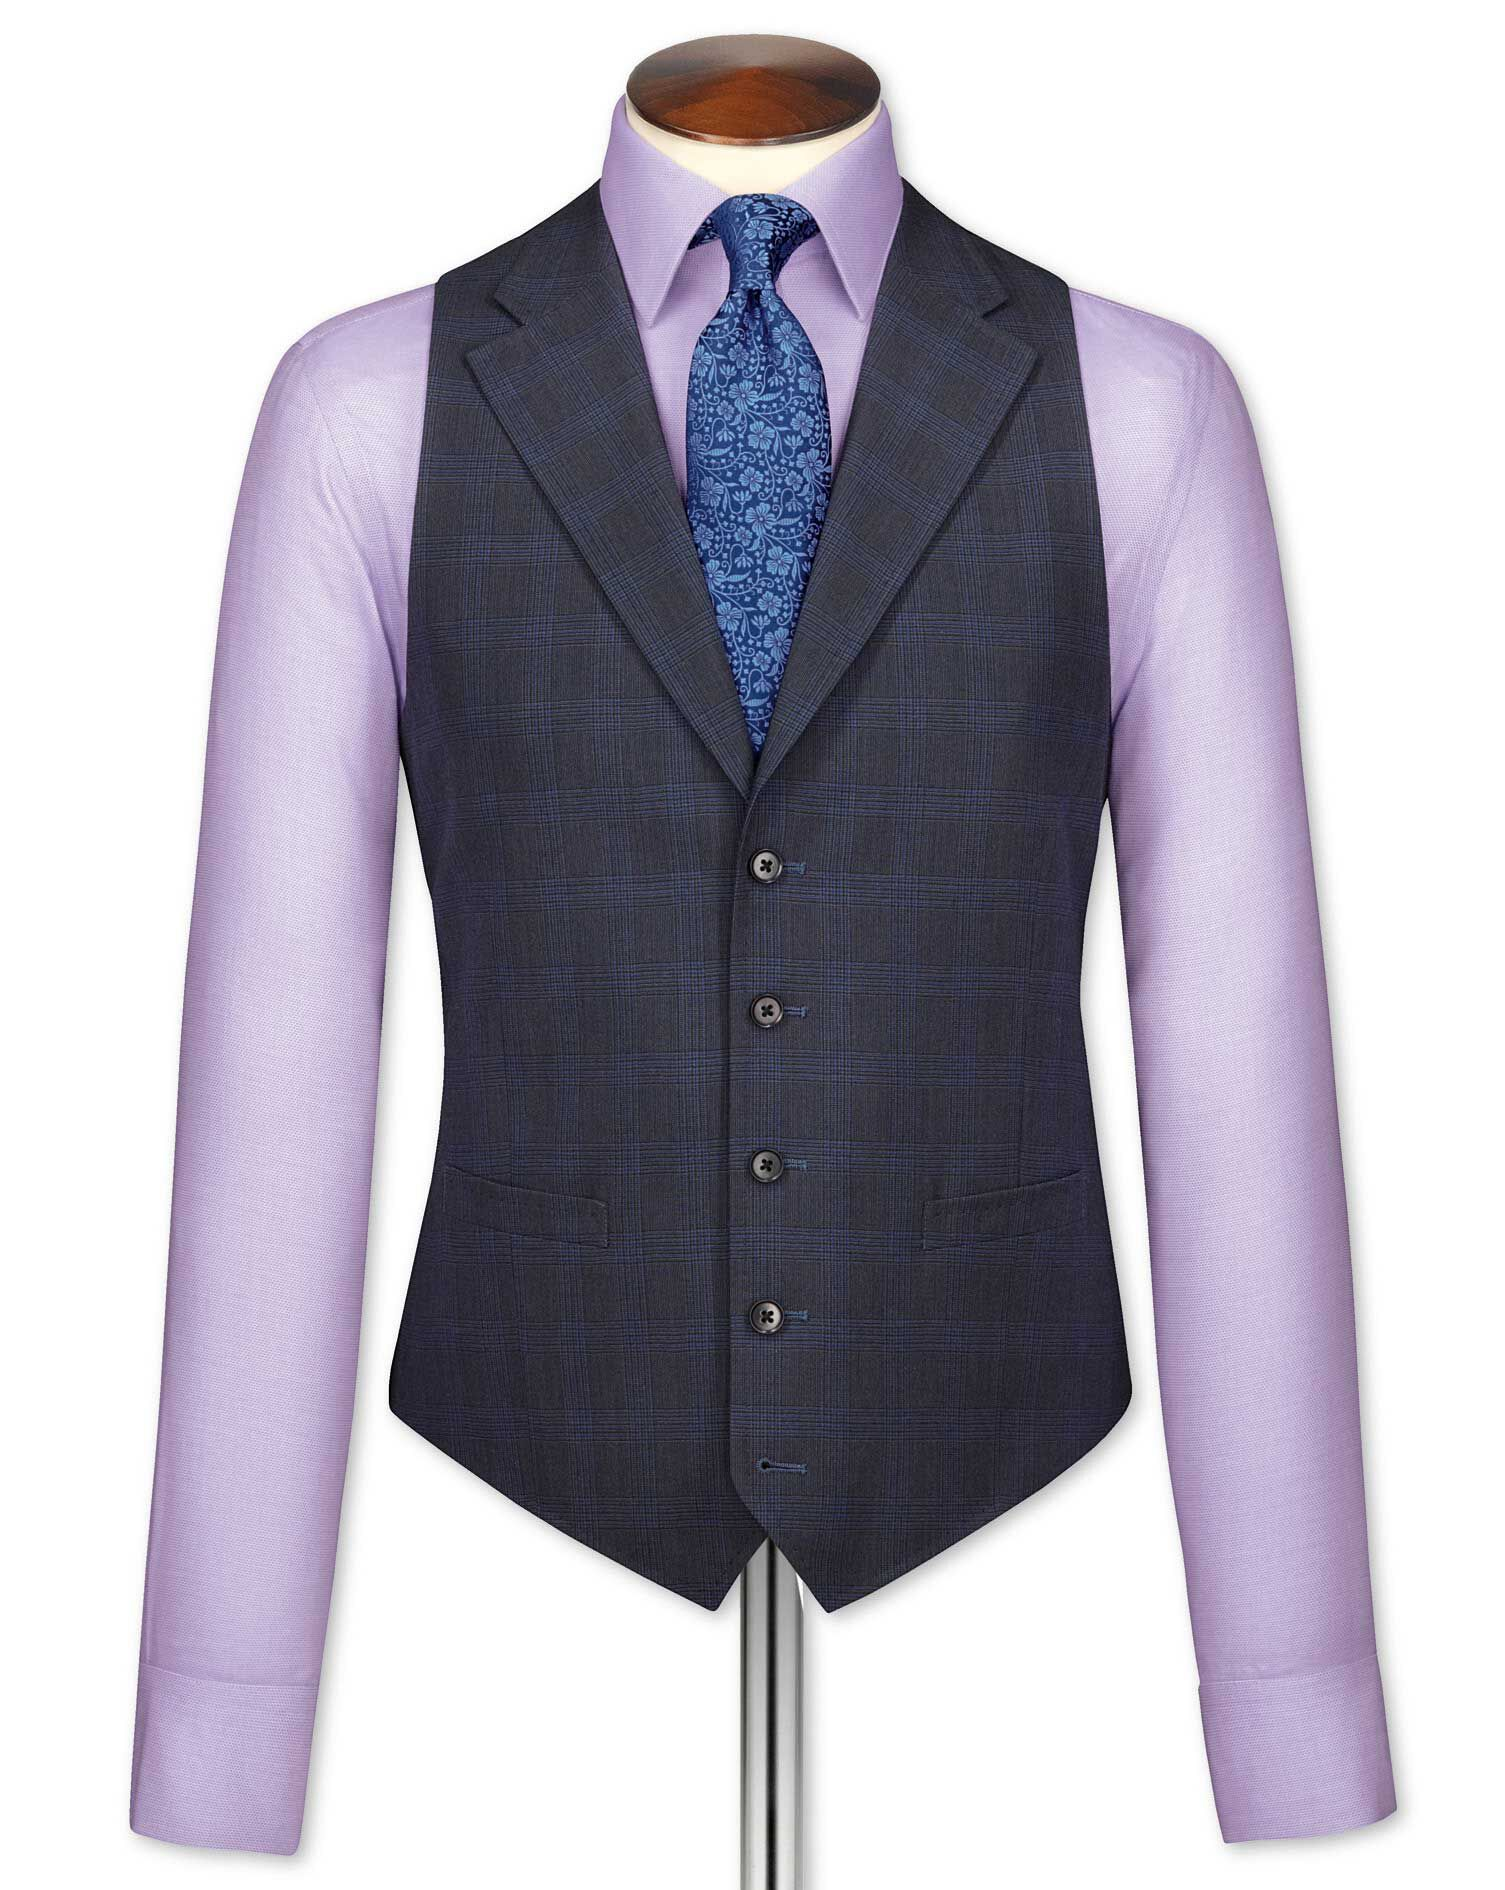 Blue Check Flannel Business Suit Wool Waistcoat Size w36 by Charles Tyrwhitt